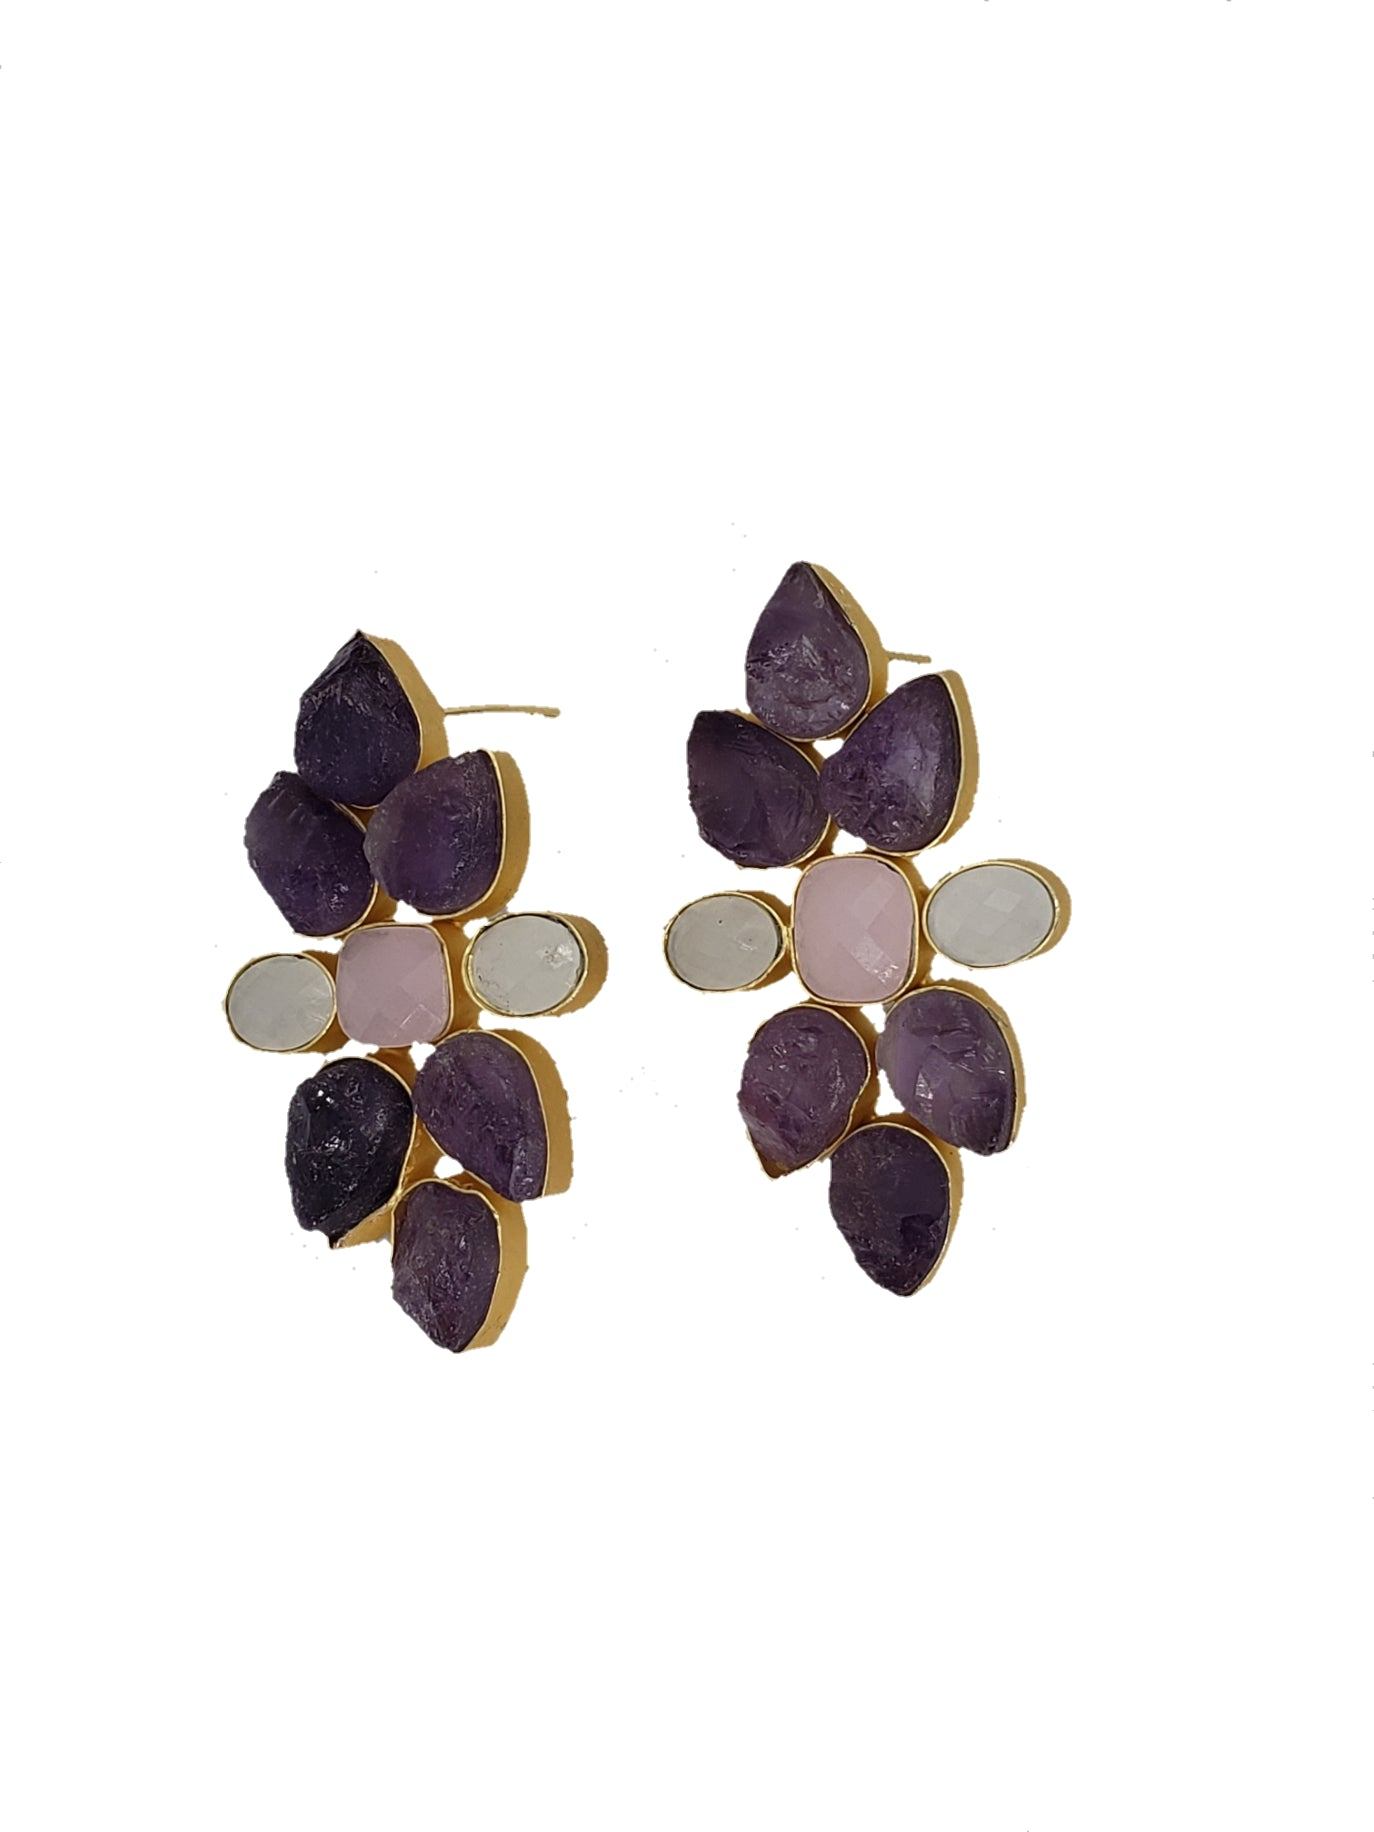 Amethyst and Rose Quartz Statement Earrings - The Bauble Shop